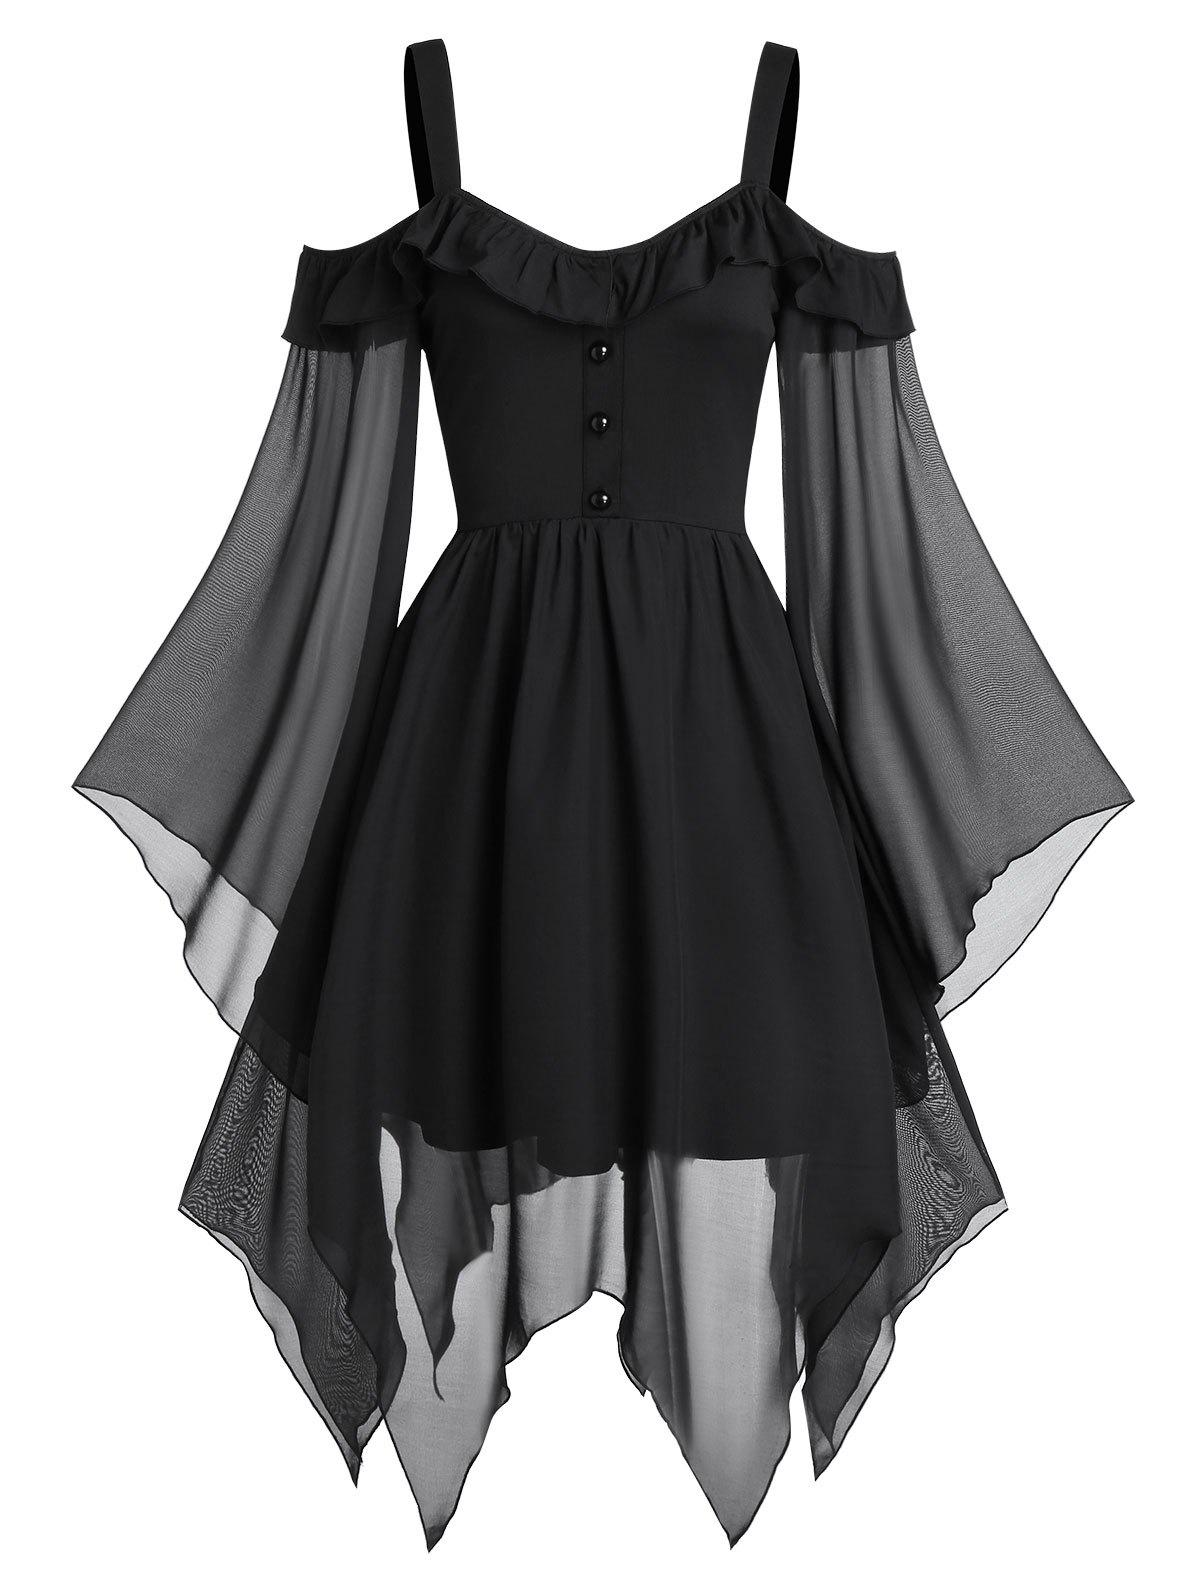 Buy Cold Shoulder Butterfly Sleeve Lace-up Handkerchief Gothic Chiffon Dress